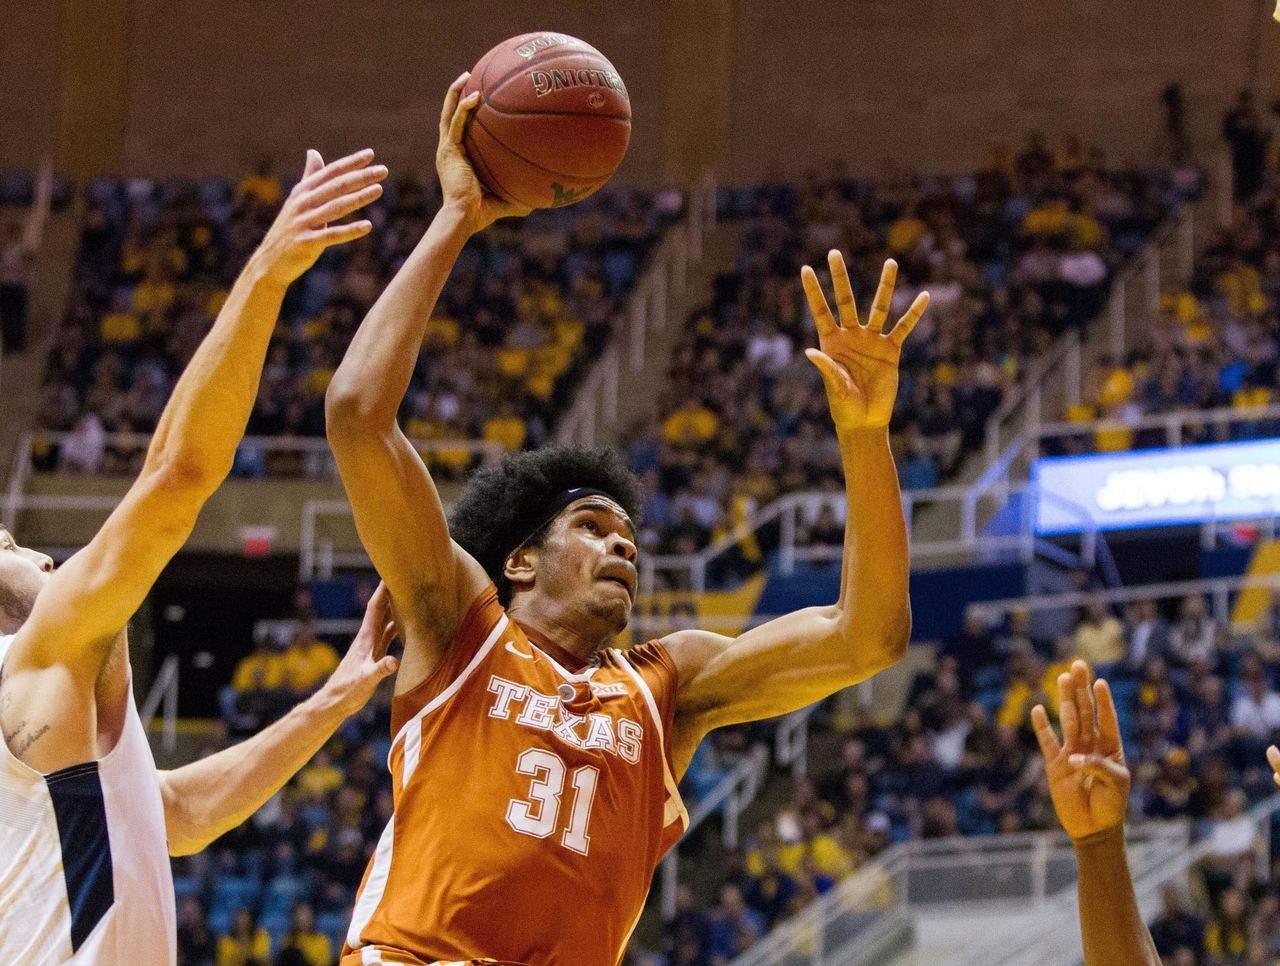 Cropped 2017 02 21t031110z 1077151690 nocid rtrmadp 3 ncaa basketball texas at west virginia